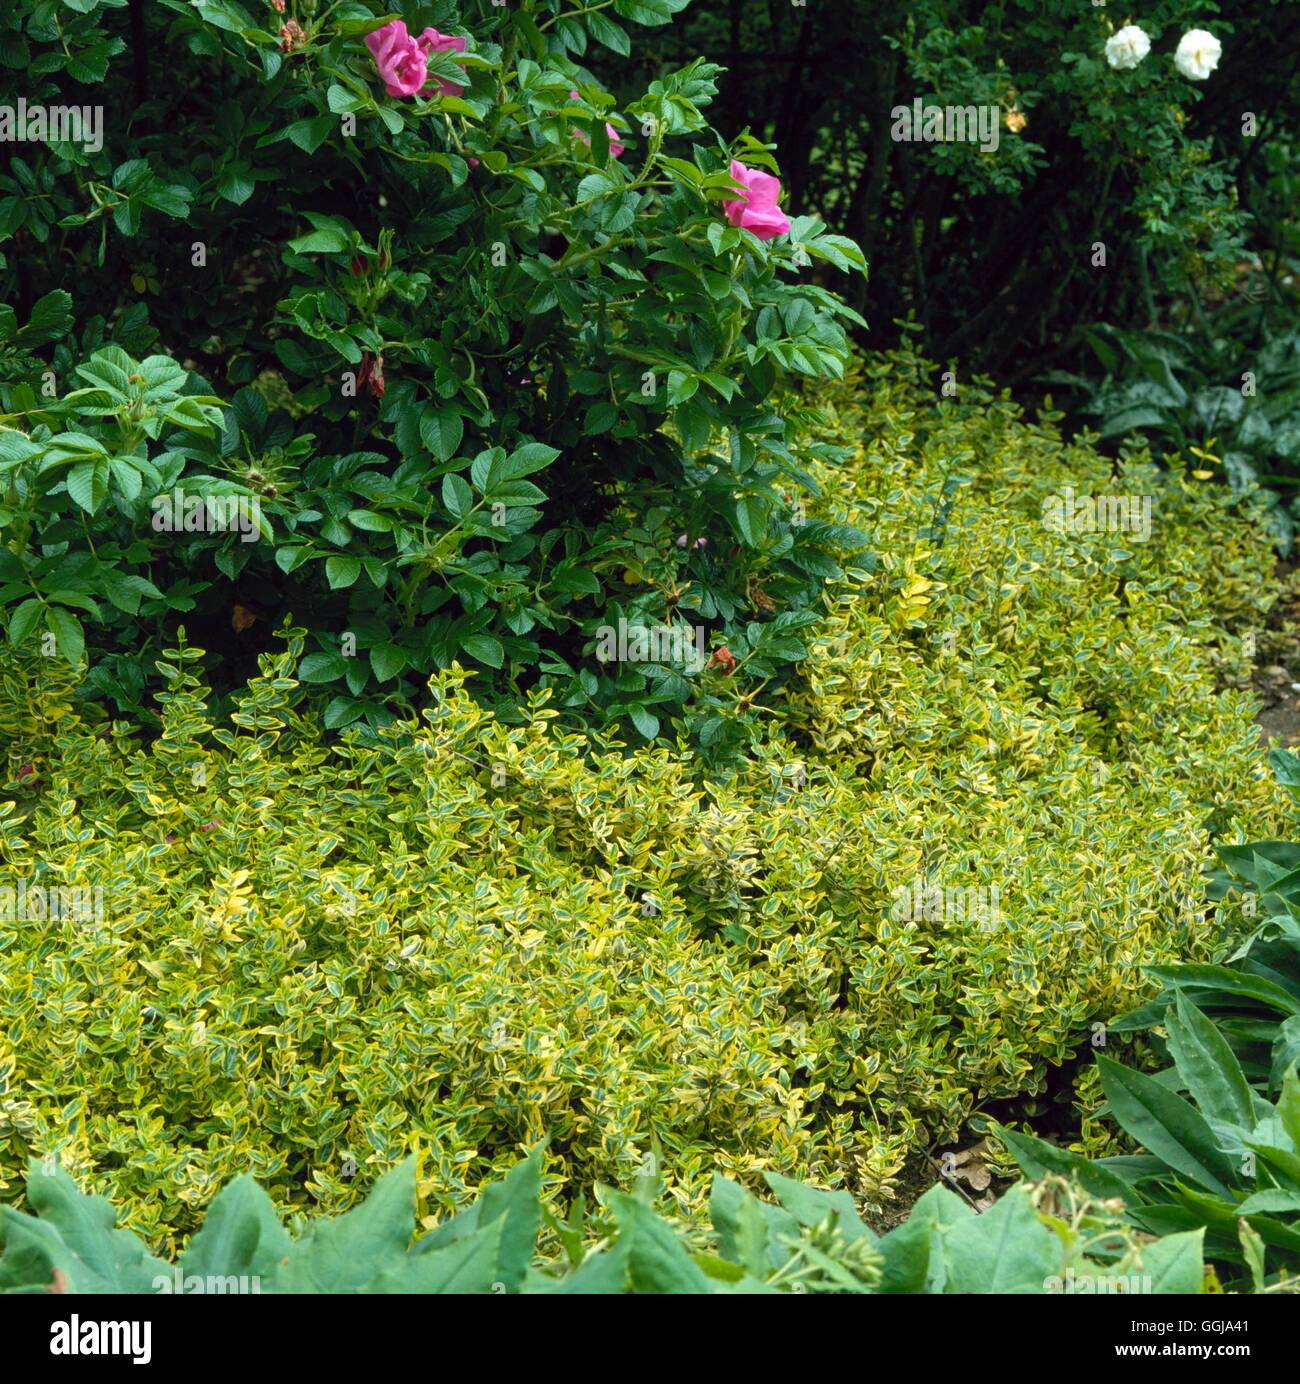 Ground Cover - Euonymus fortunei `Emerald `n' Gold' AGM   GDC004174  /Photosh - Stock Image